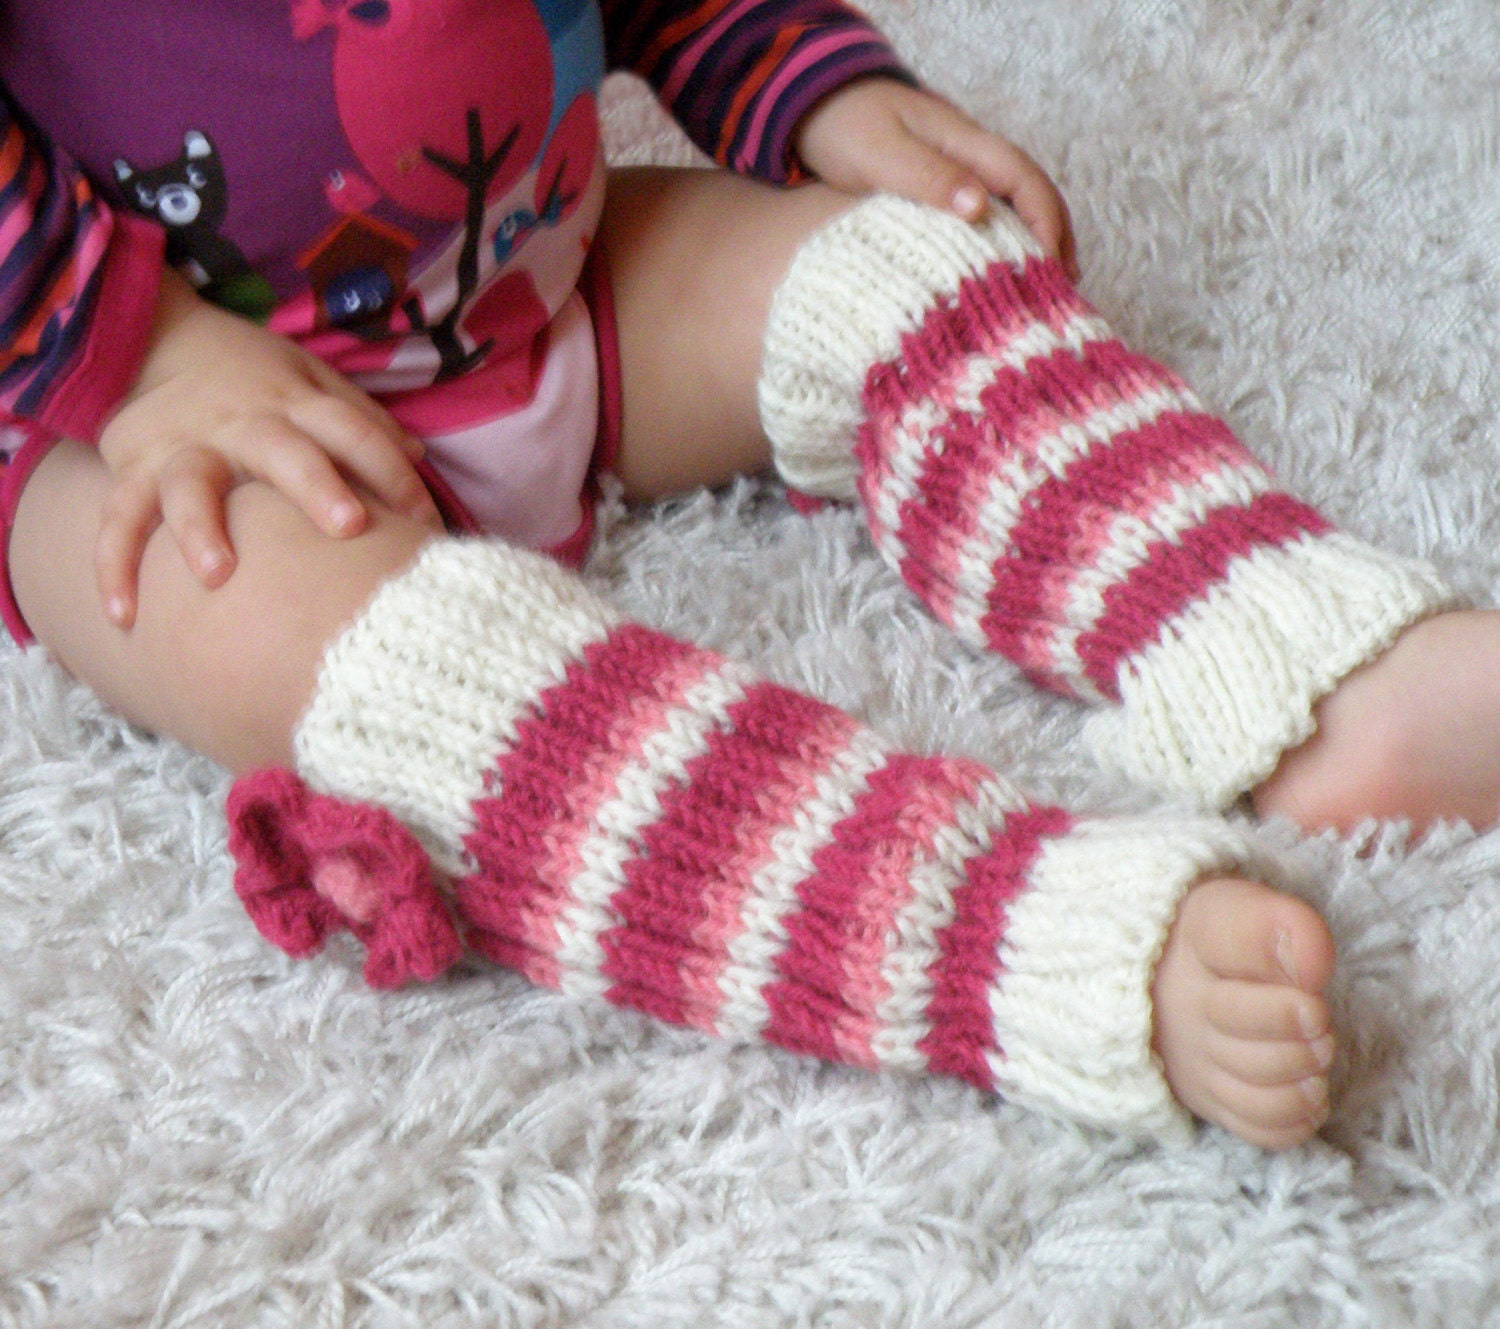 Every little girl's wardrobe should include these Red Triple Ruffle leg warmers. They are the perfect accessory for dressing up everyday outfits, especially those in the Big Bear Collection. Plus they will add a splash of festive color to her holiday ensemble.